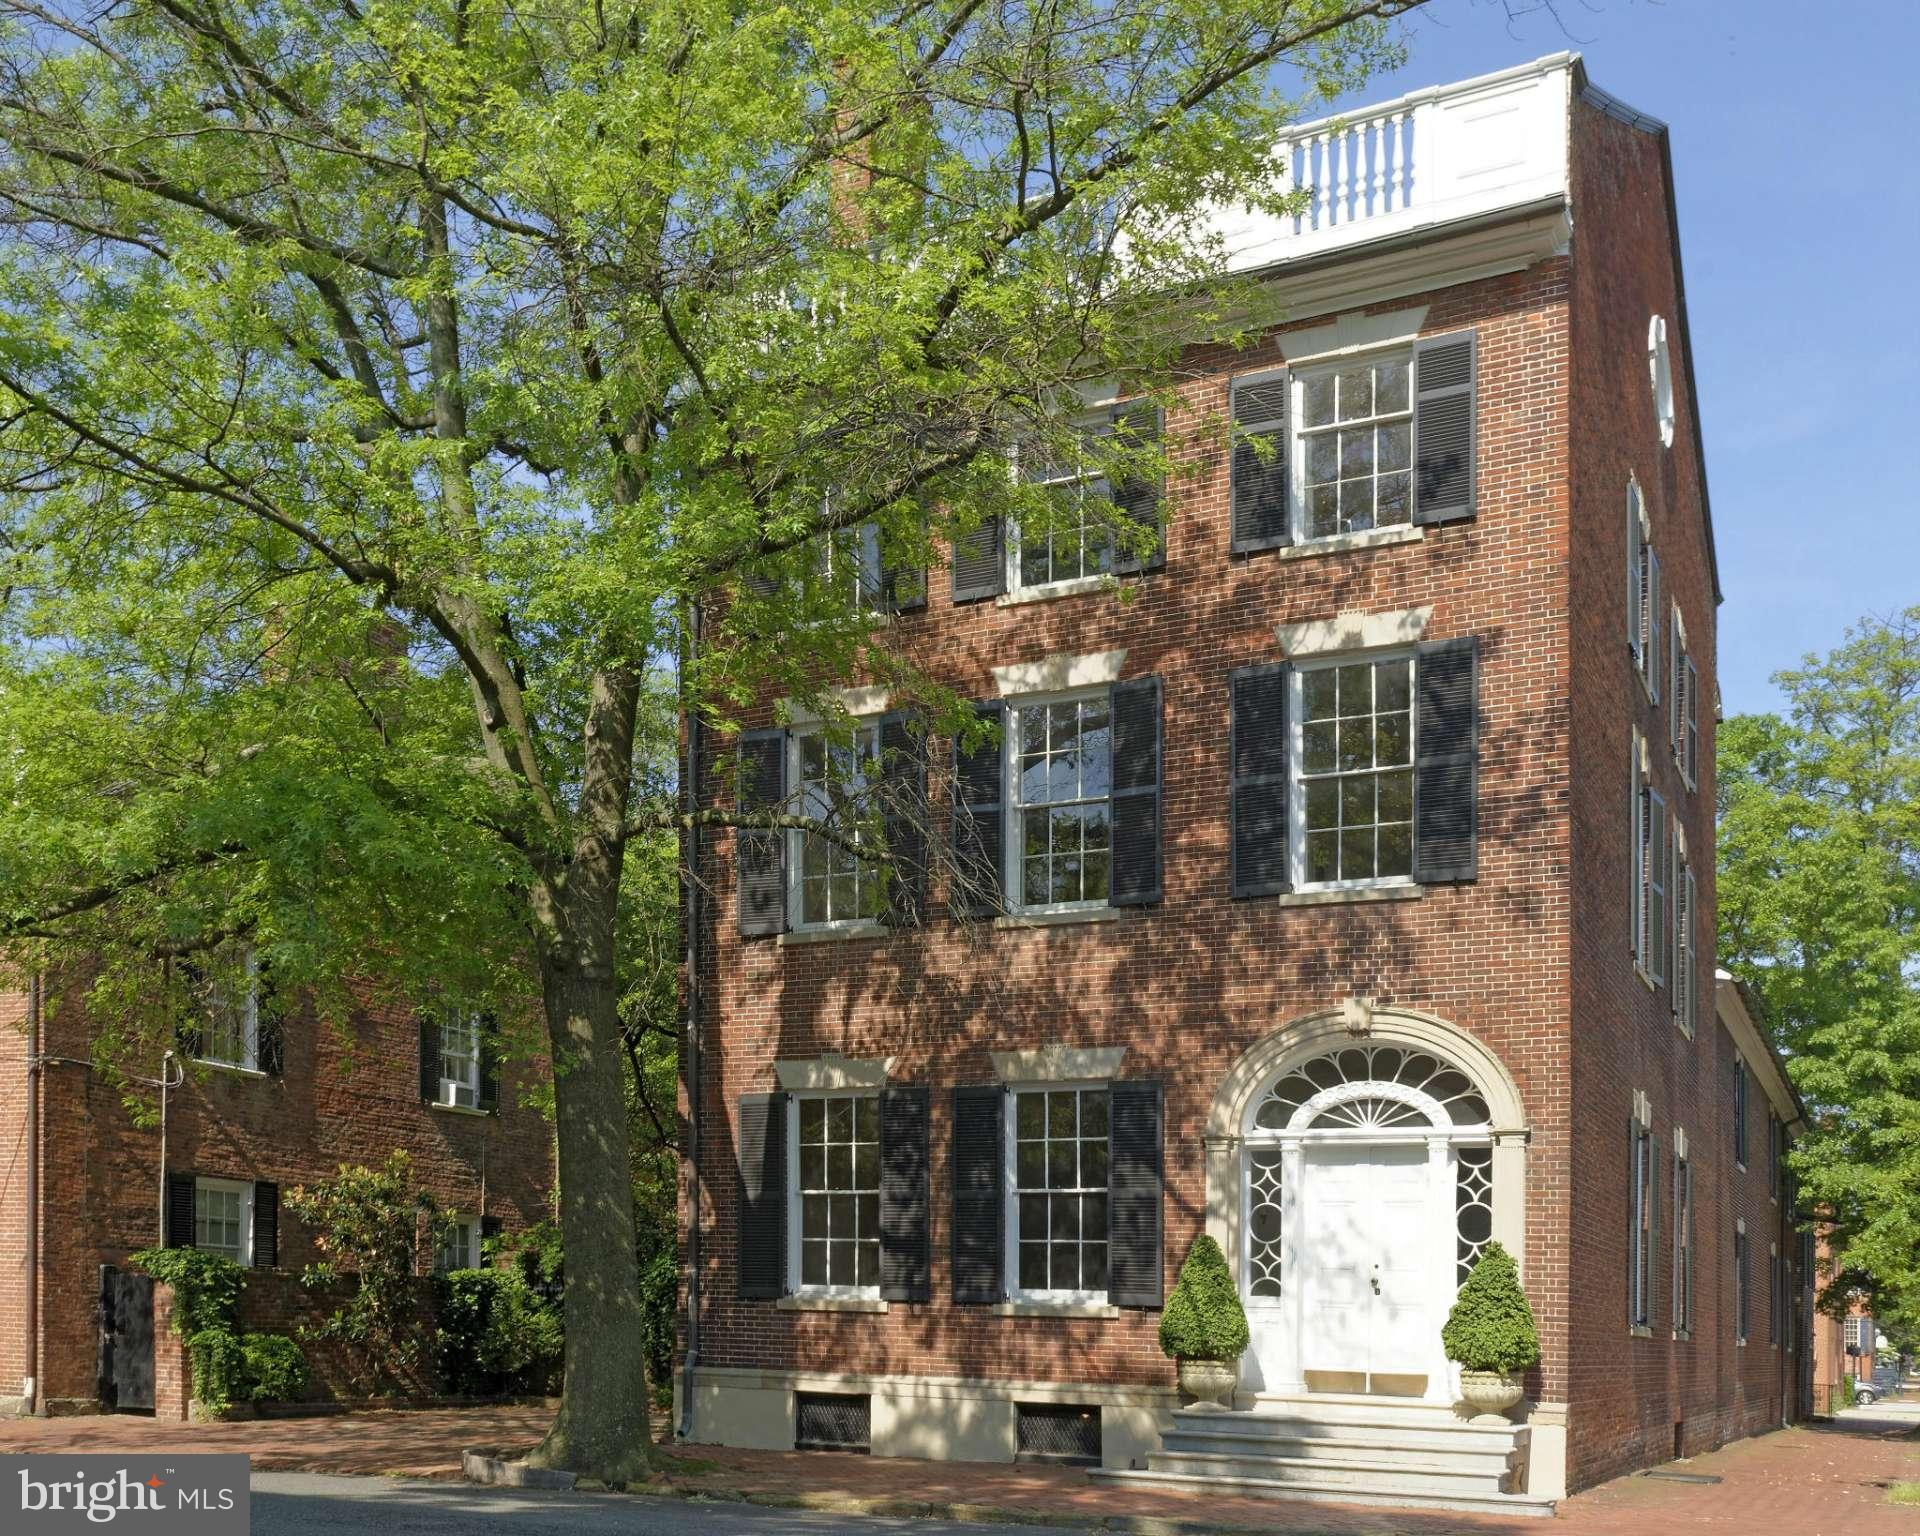 The Historic Lafayette House, where the Marquis de Lafayette stayed in 1824, is available for the first time in decades. Outstanding architectural details include front door arch, grand entry hall, 11 fireplaces with period mantels, pocket doors, heart pine floors and 12 foot ceilings. Six bedrooms, 3.5 baths, lovely walled garden and off street parking. Preservation Easement.